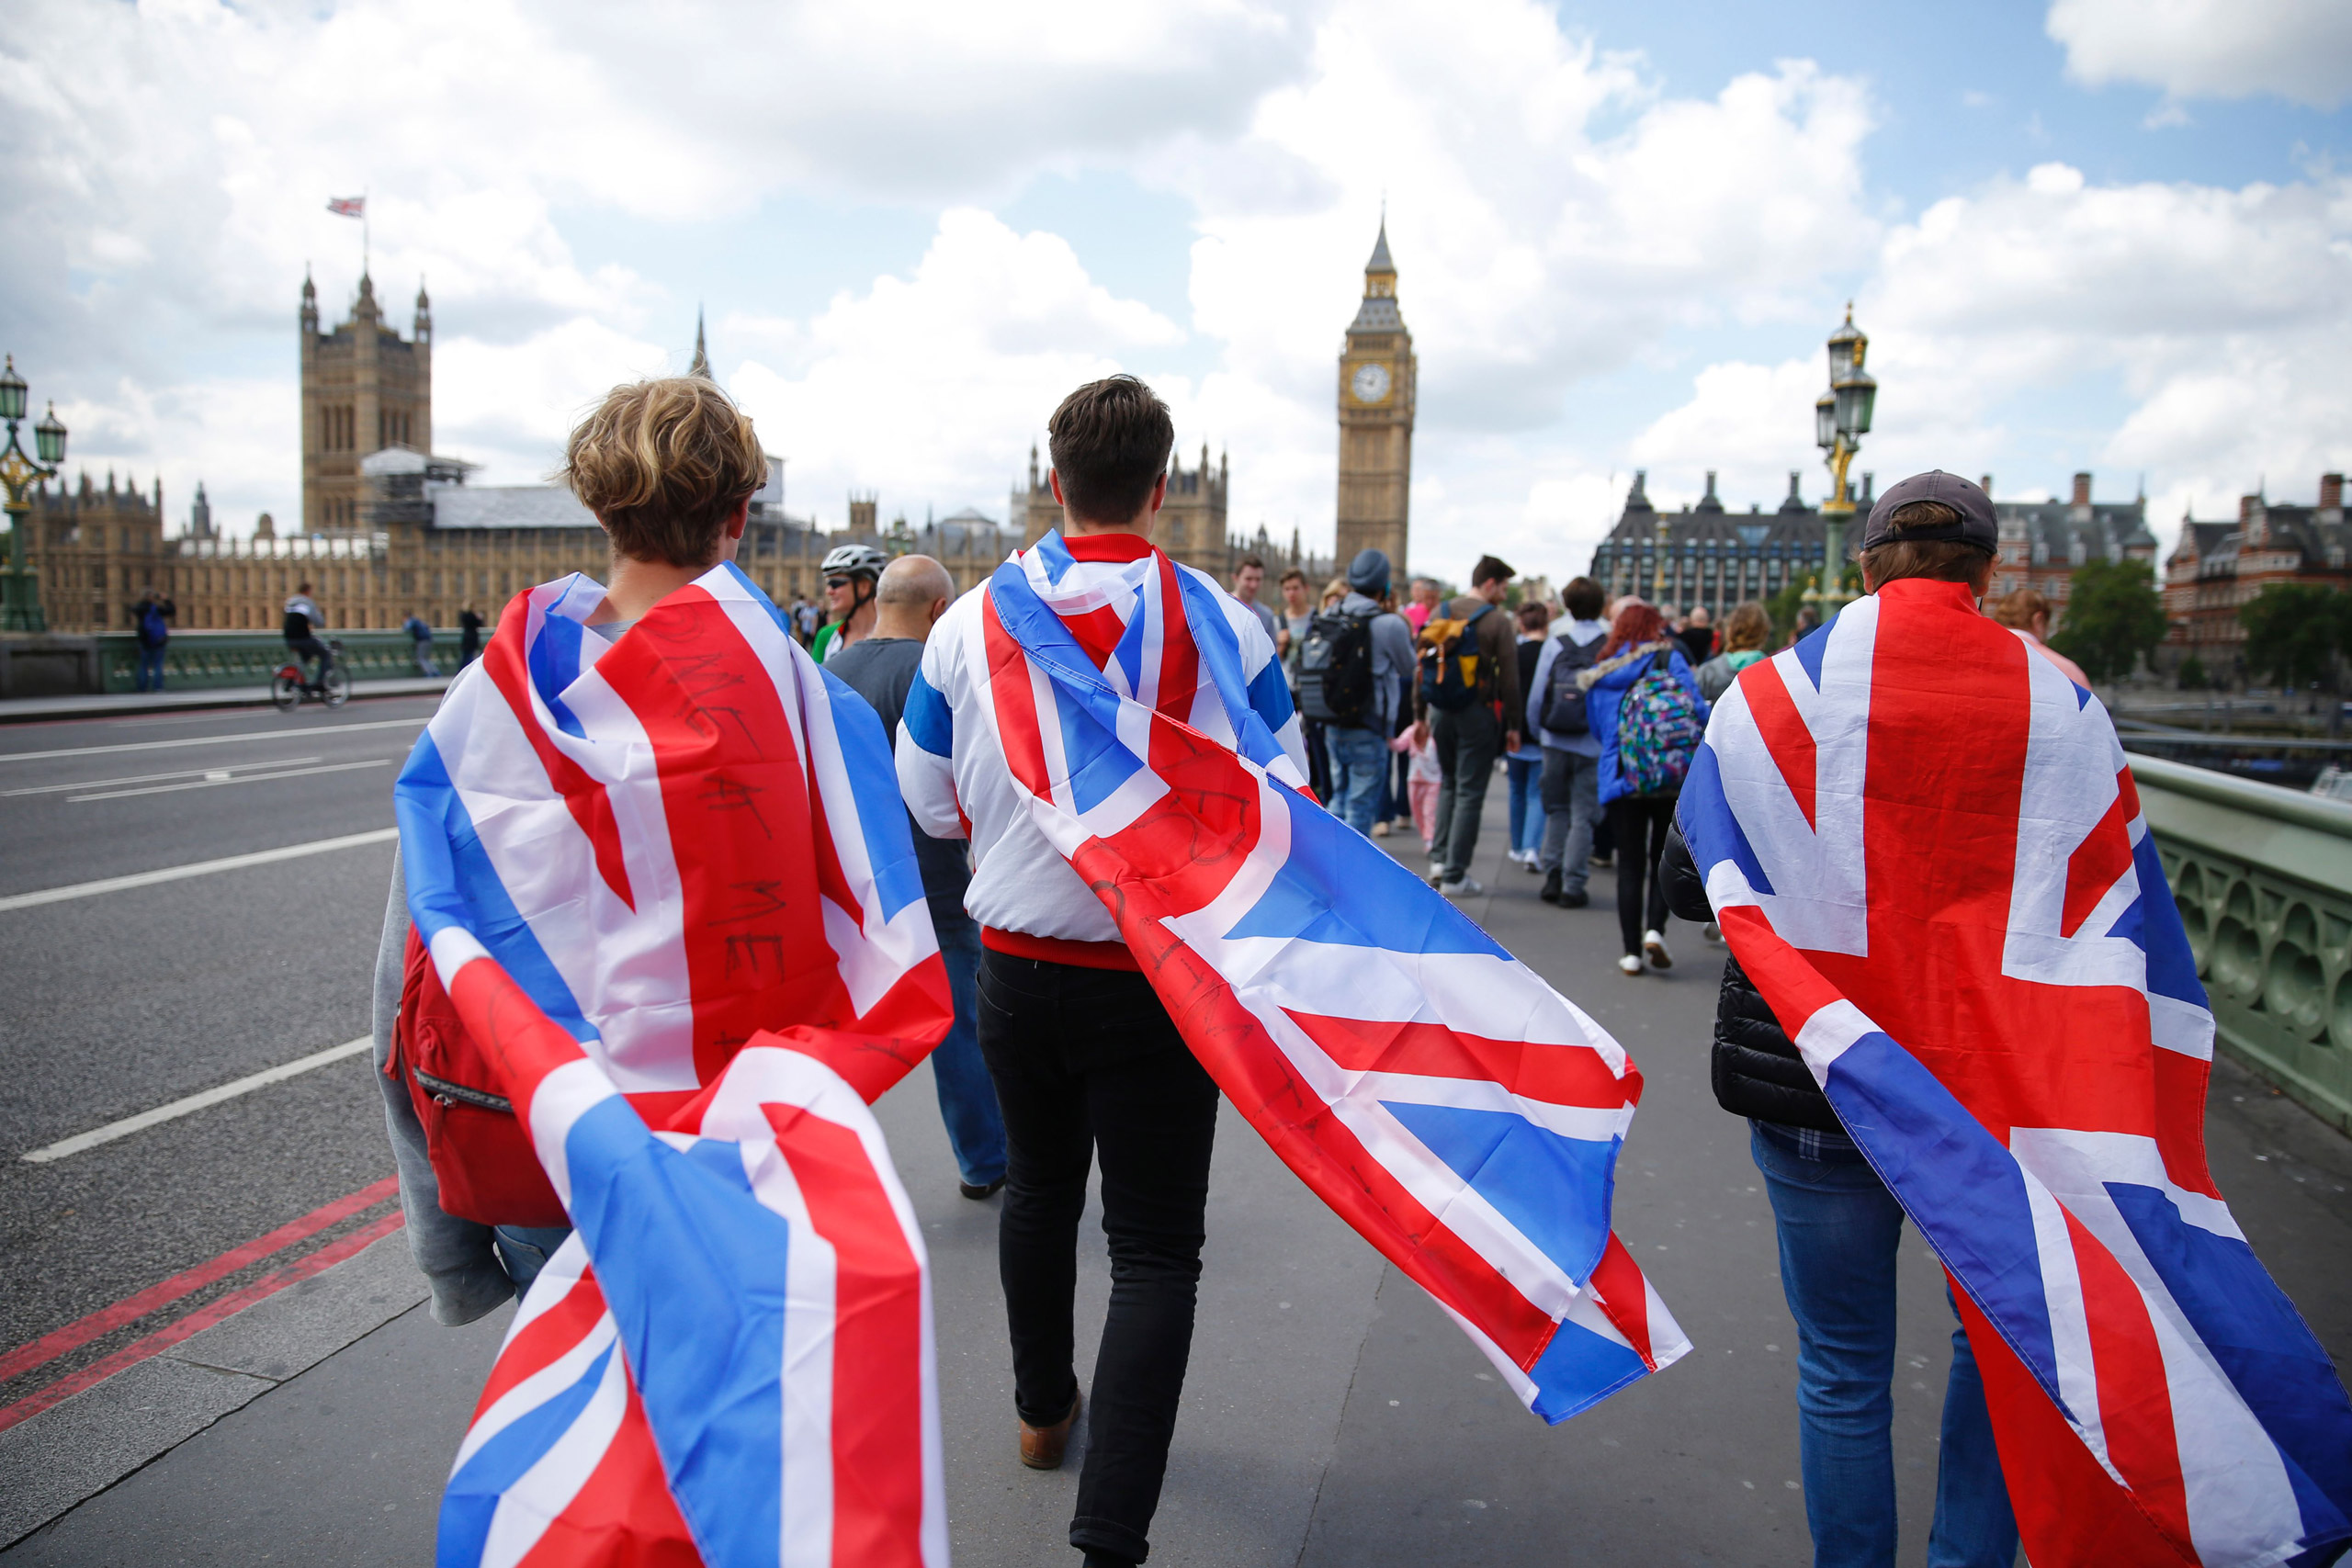 People walk over Westminster Bridge wrapped in Union flags in London on June 26, 2016.